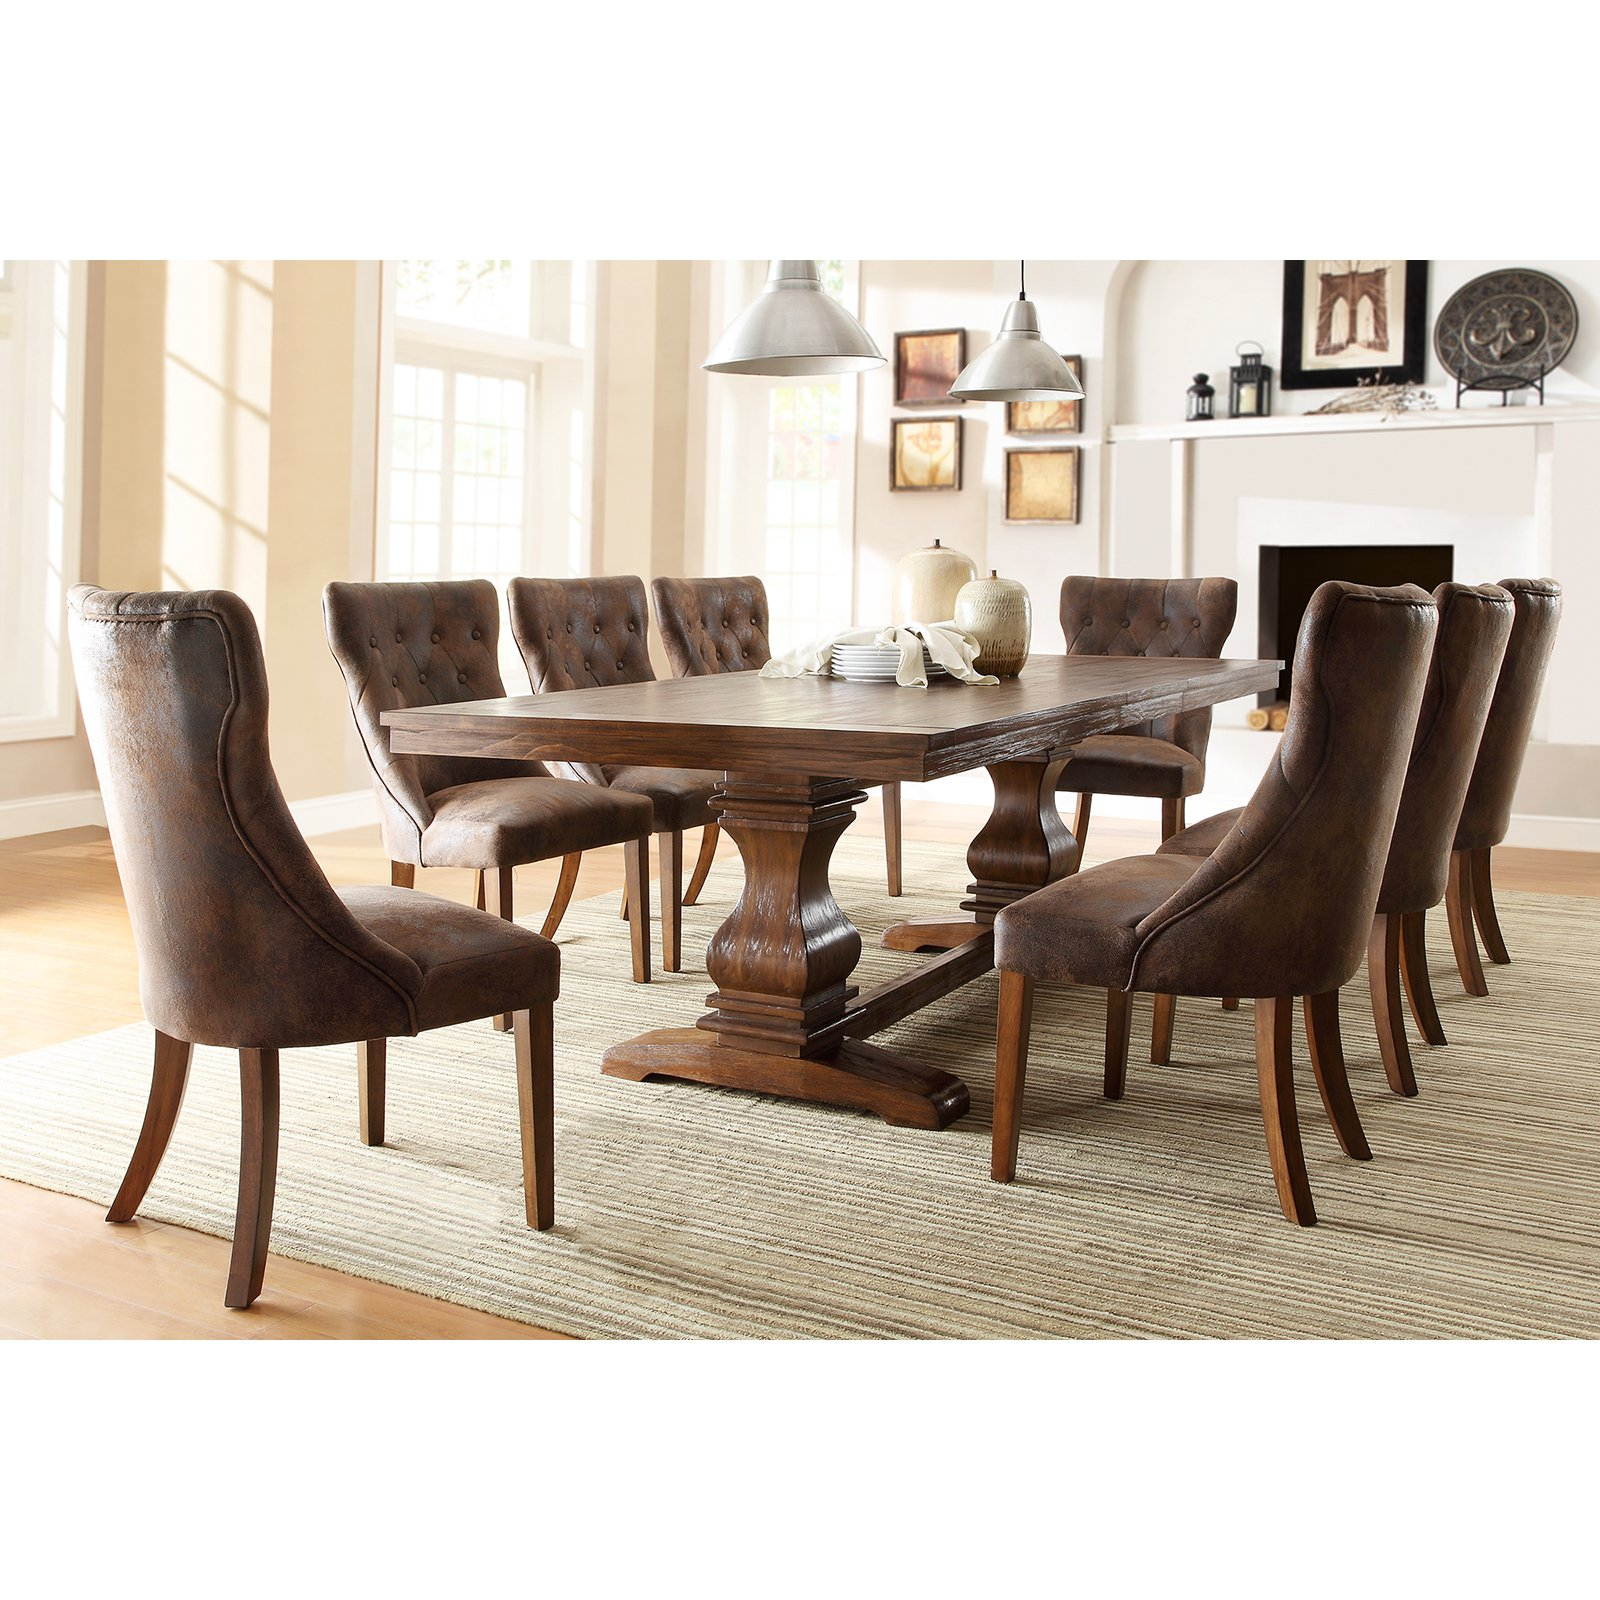 Weston Home Marie Louise 9 Piece Expandable Trestle Dining Table Set    Weathered Oak   Walmart.com